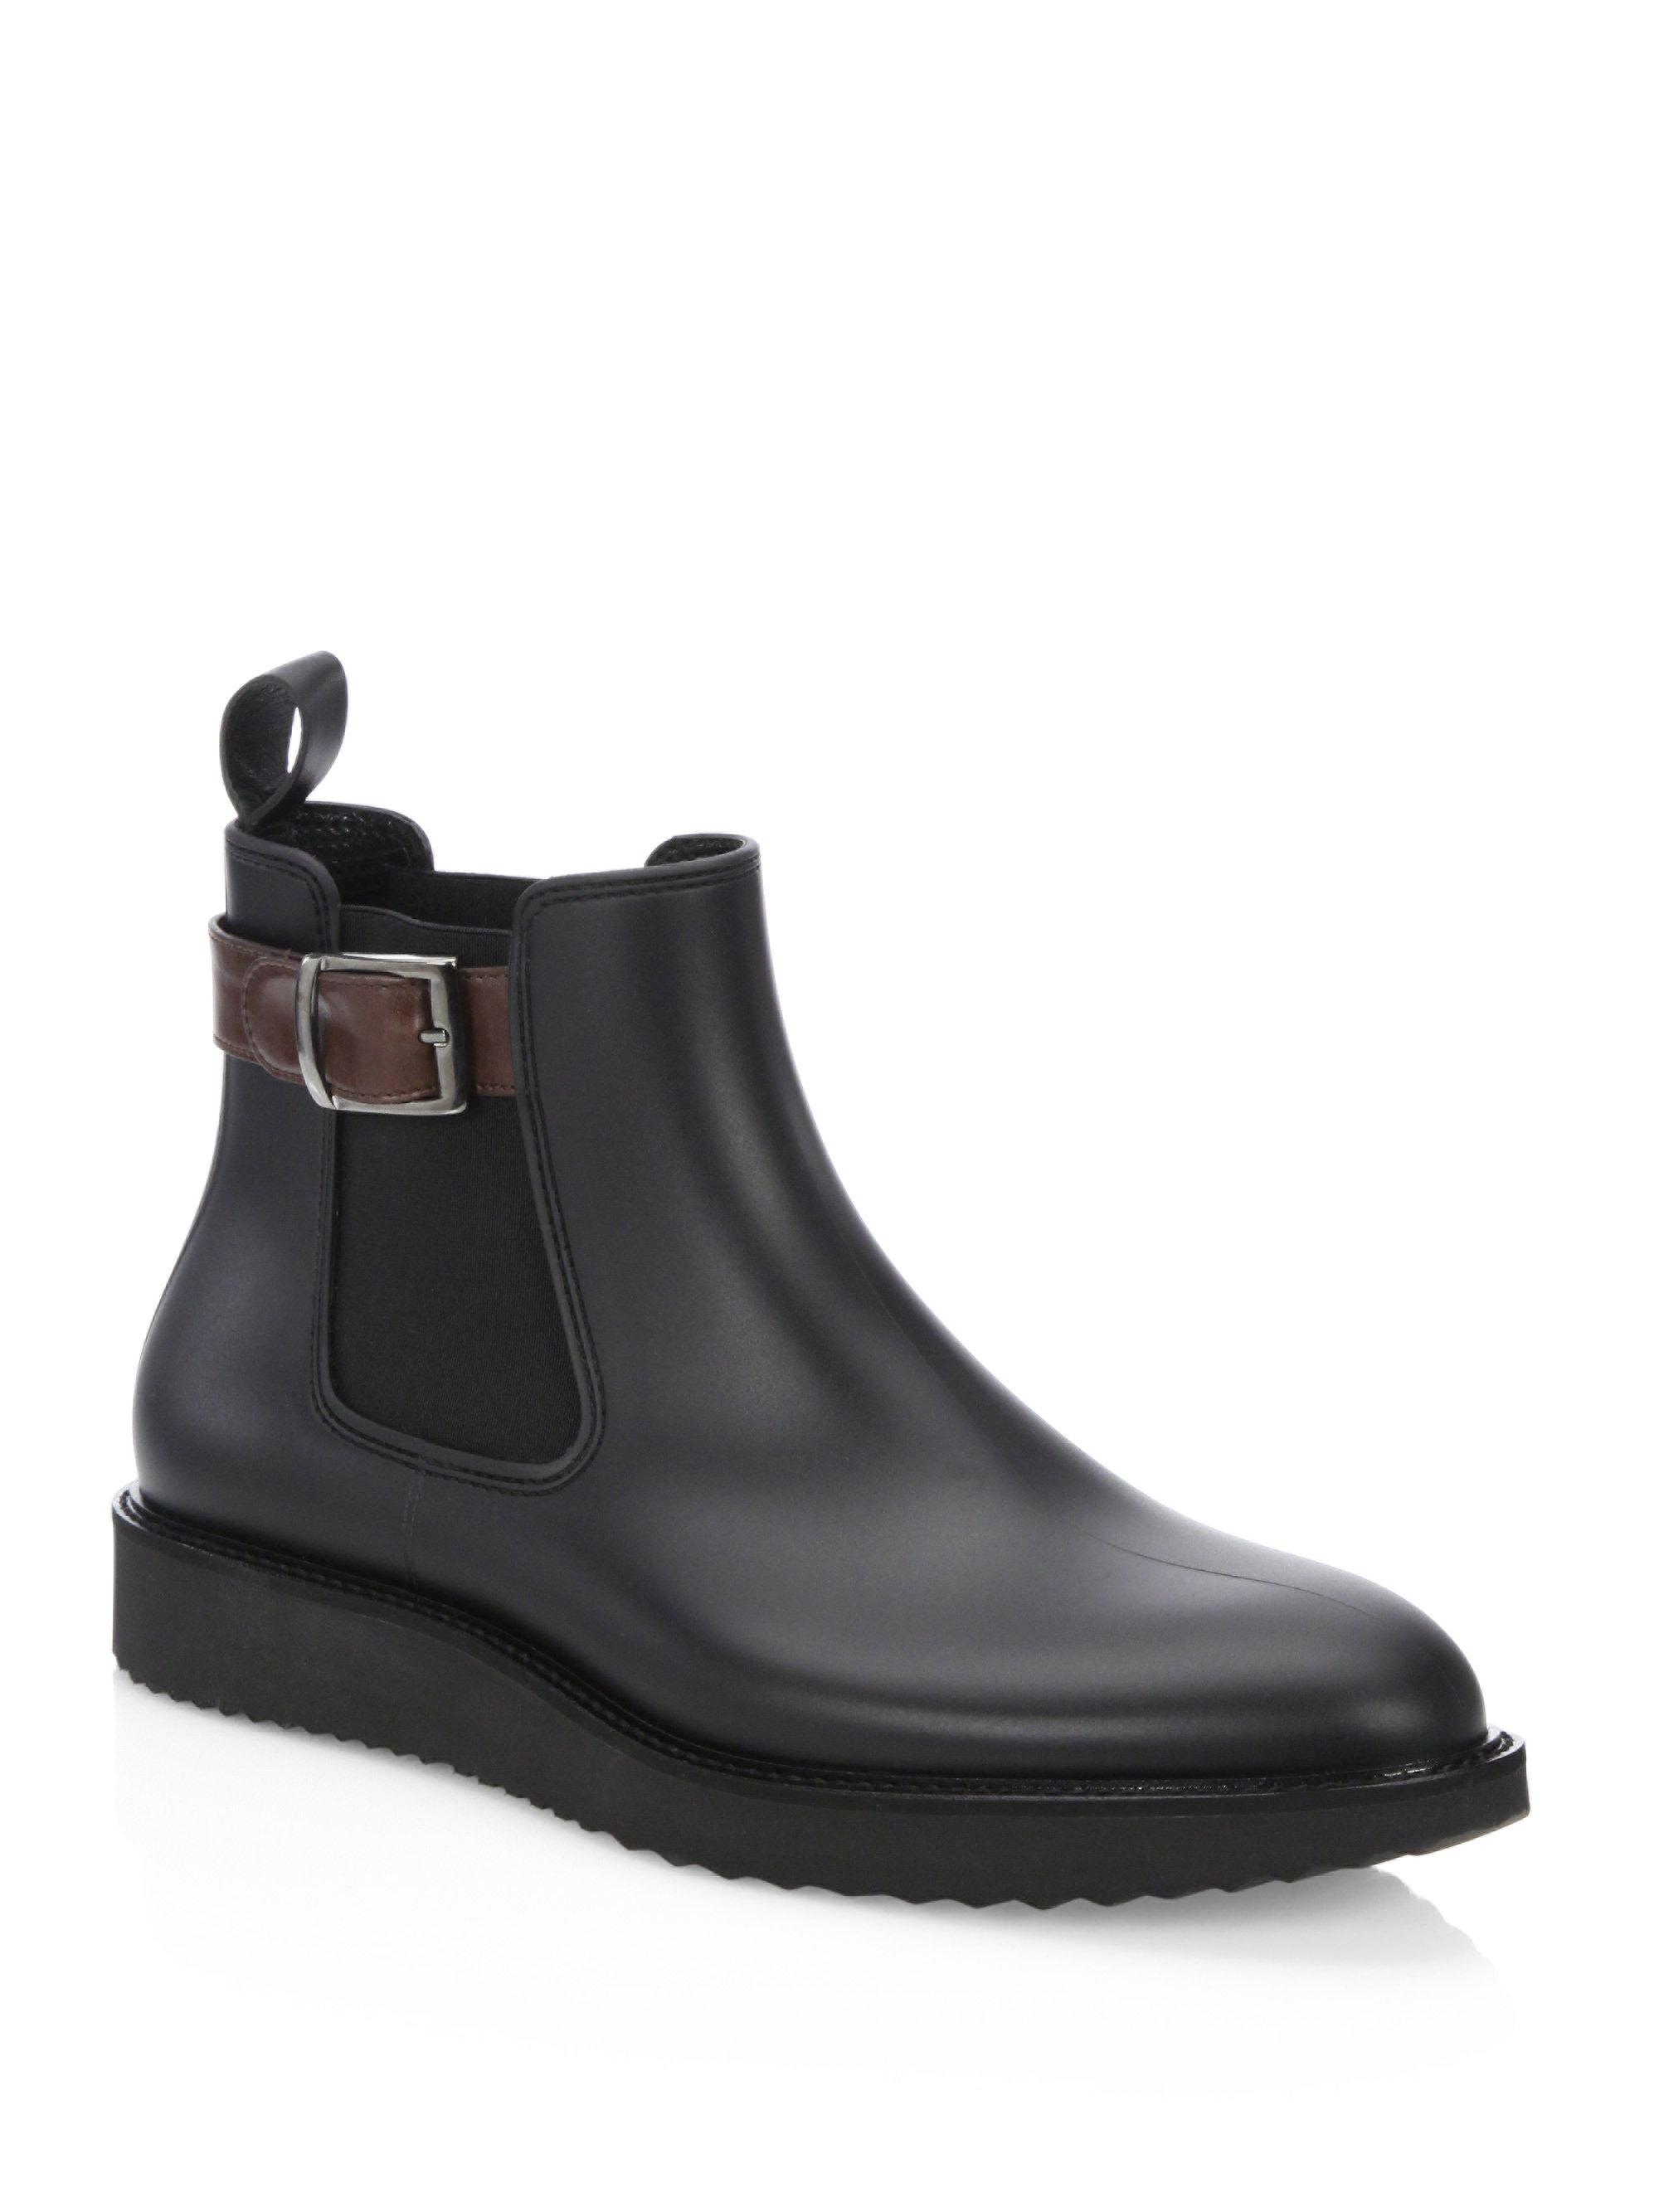 Saks Fifth Avenue COLLECTION Buckle Rubber Chelsea Boots Dci5UUHXN